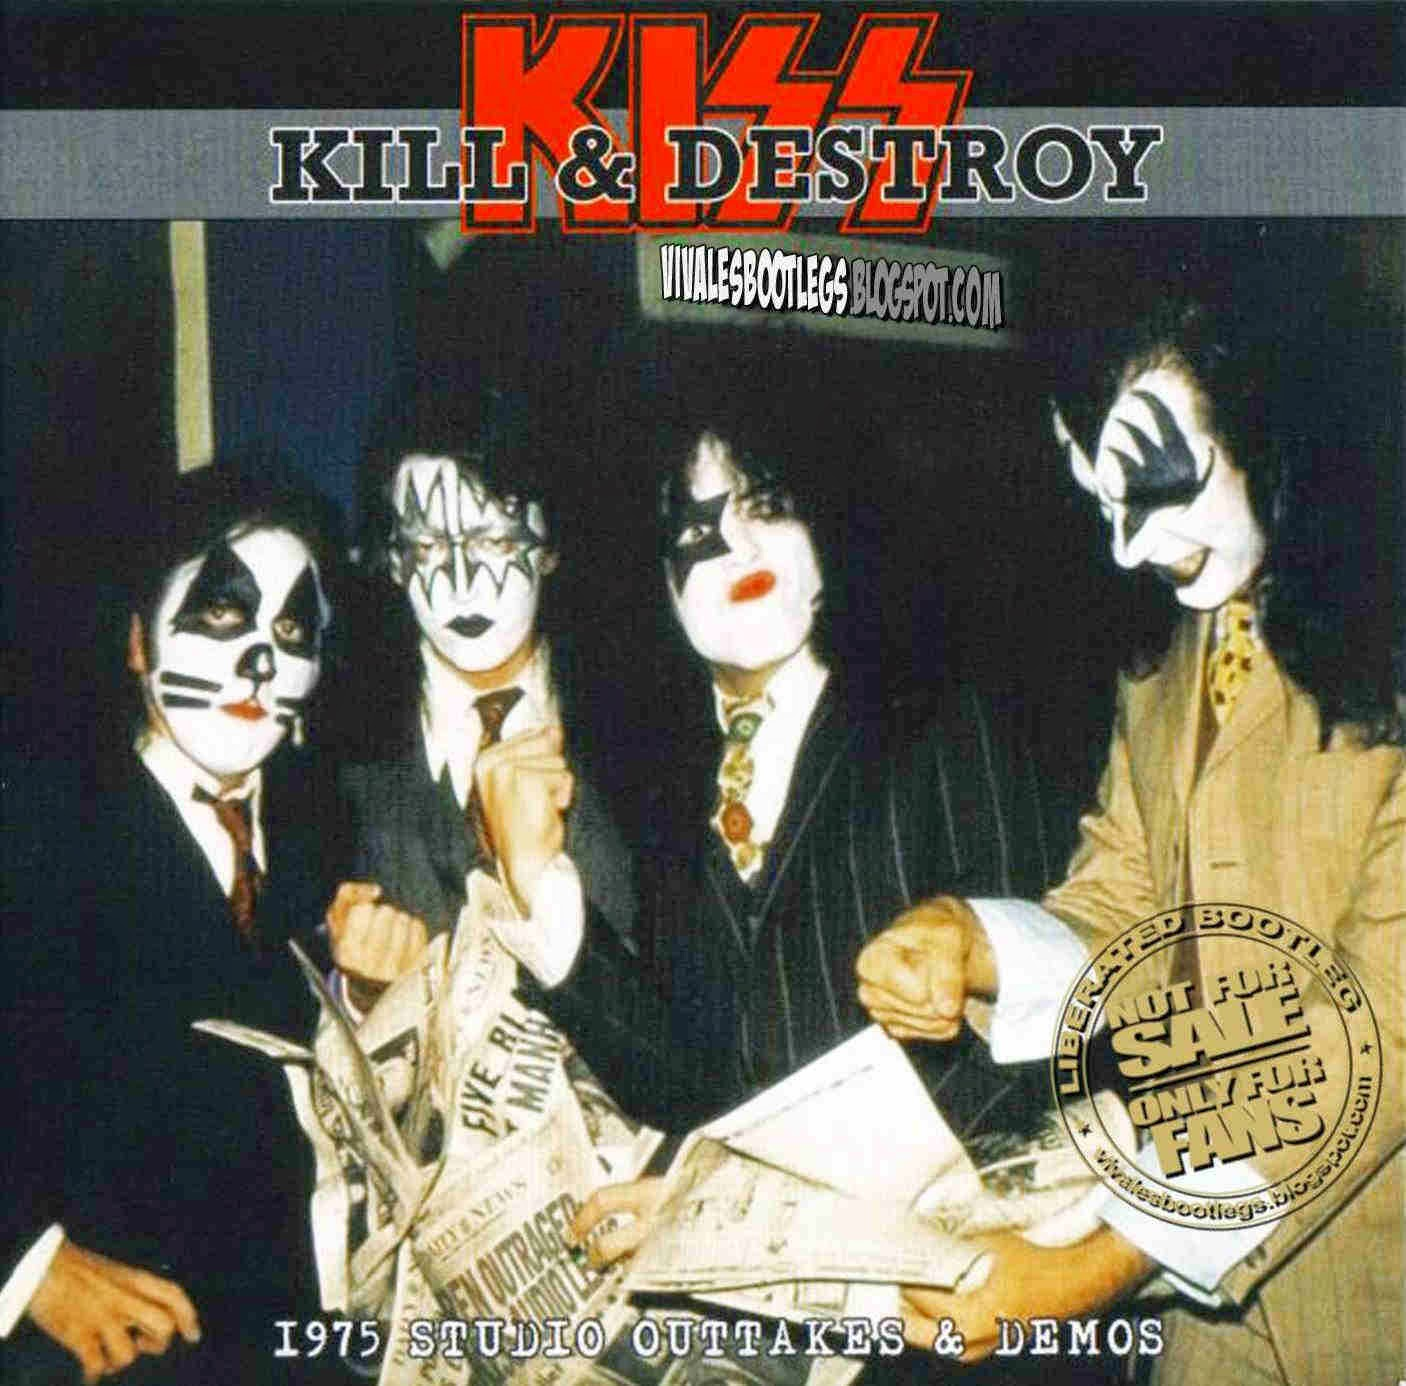 T U B E : Kiss - 1970s Demos 1975 (Kill & Destroy) (STU/FLAC)